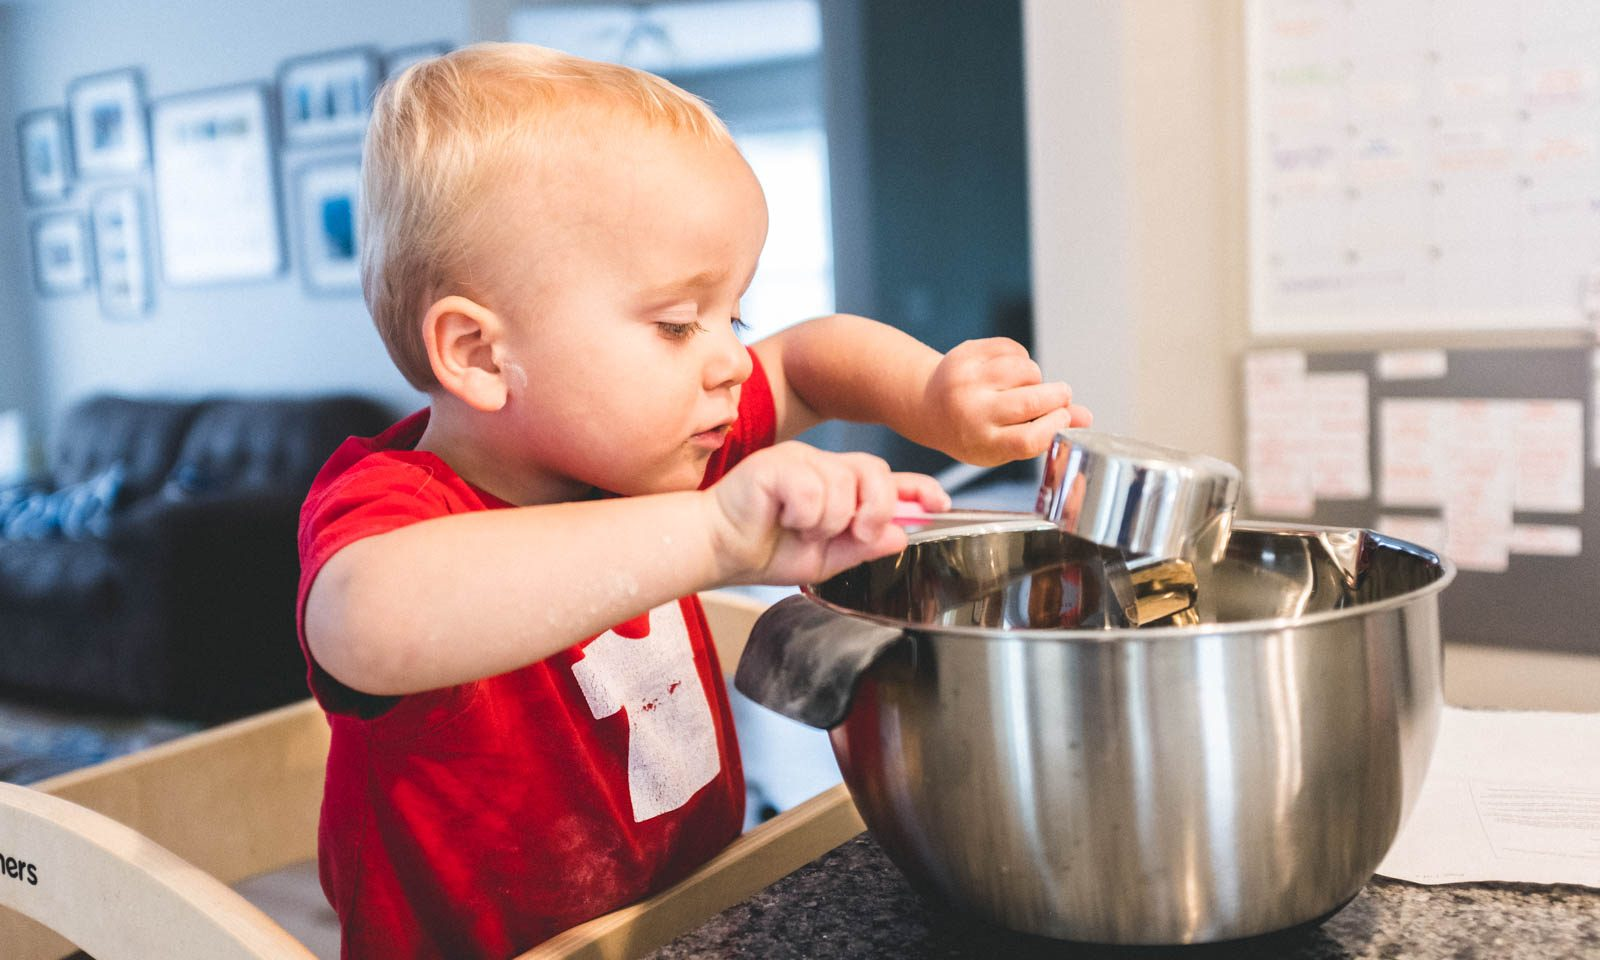 toddler cooking with food allergies using stainless steel measuring cups and mixing bowl